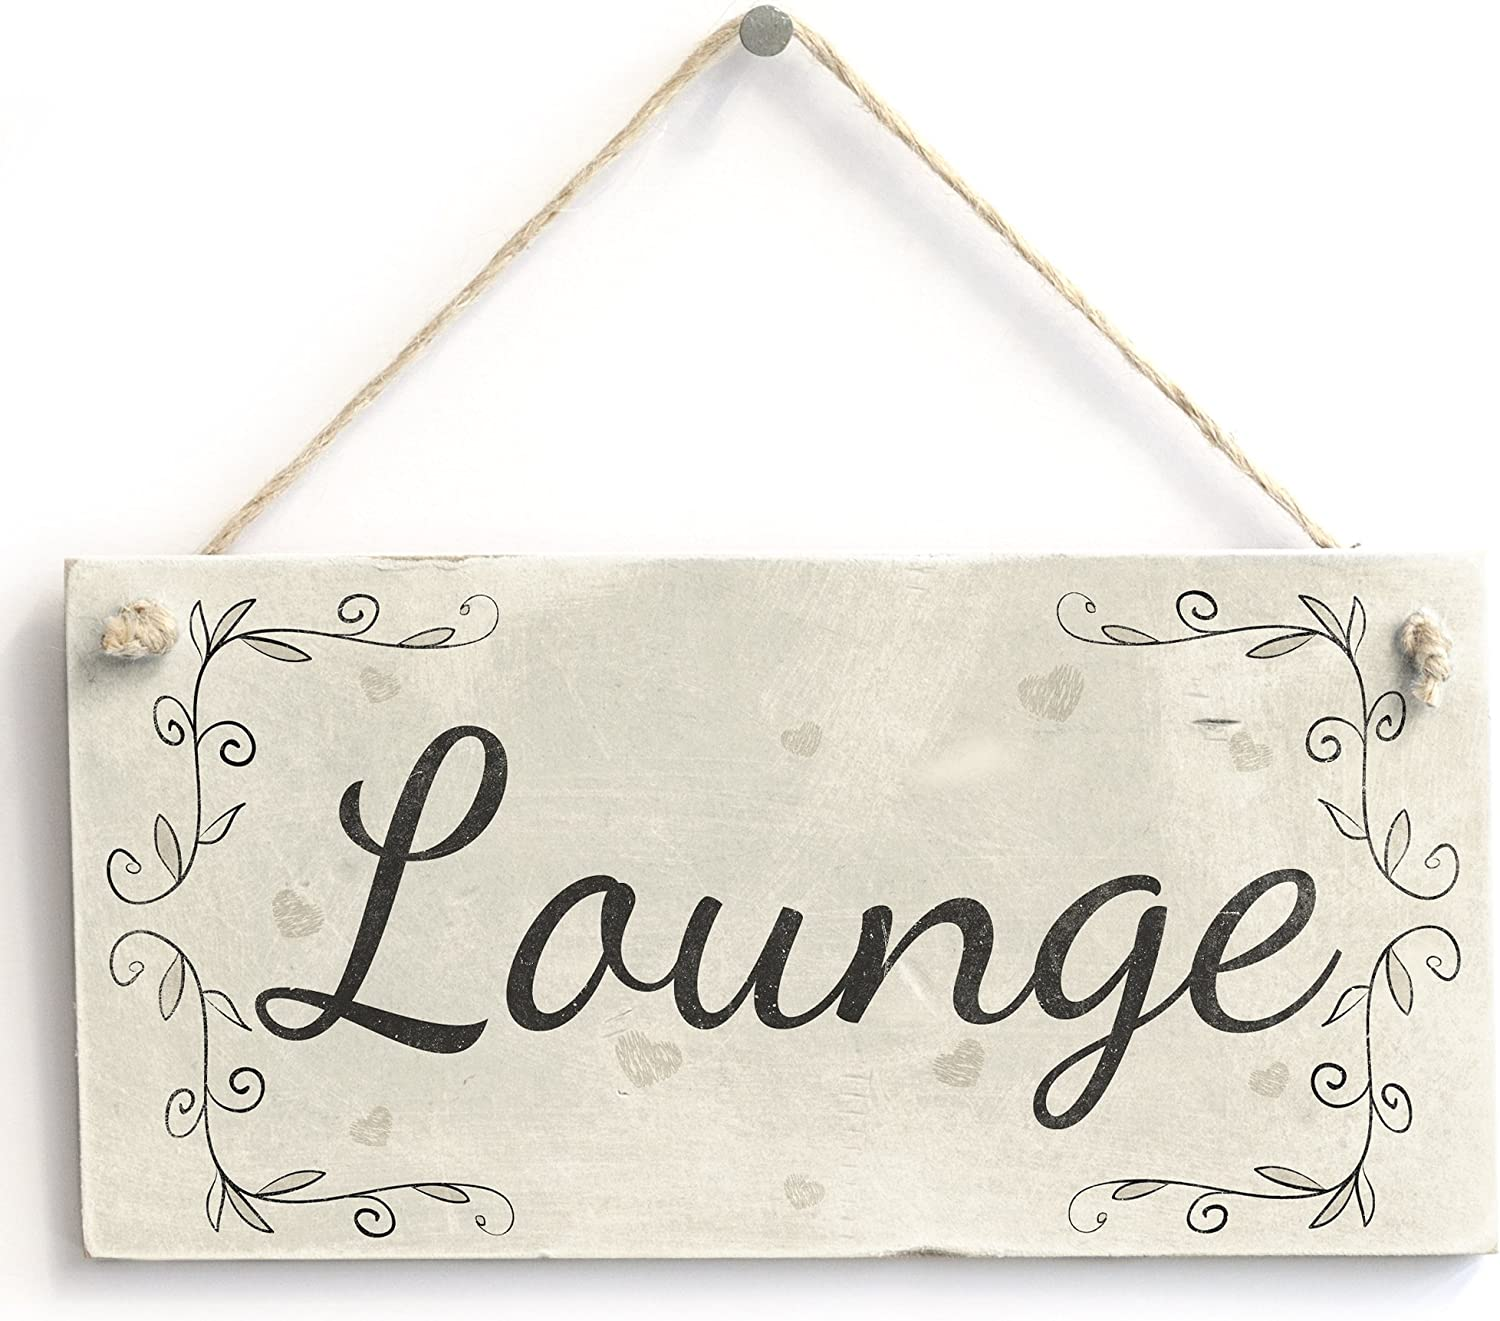 Lounge Plaque Home Decor Living Room Handmade Country Style Wooden Door Sign